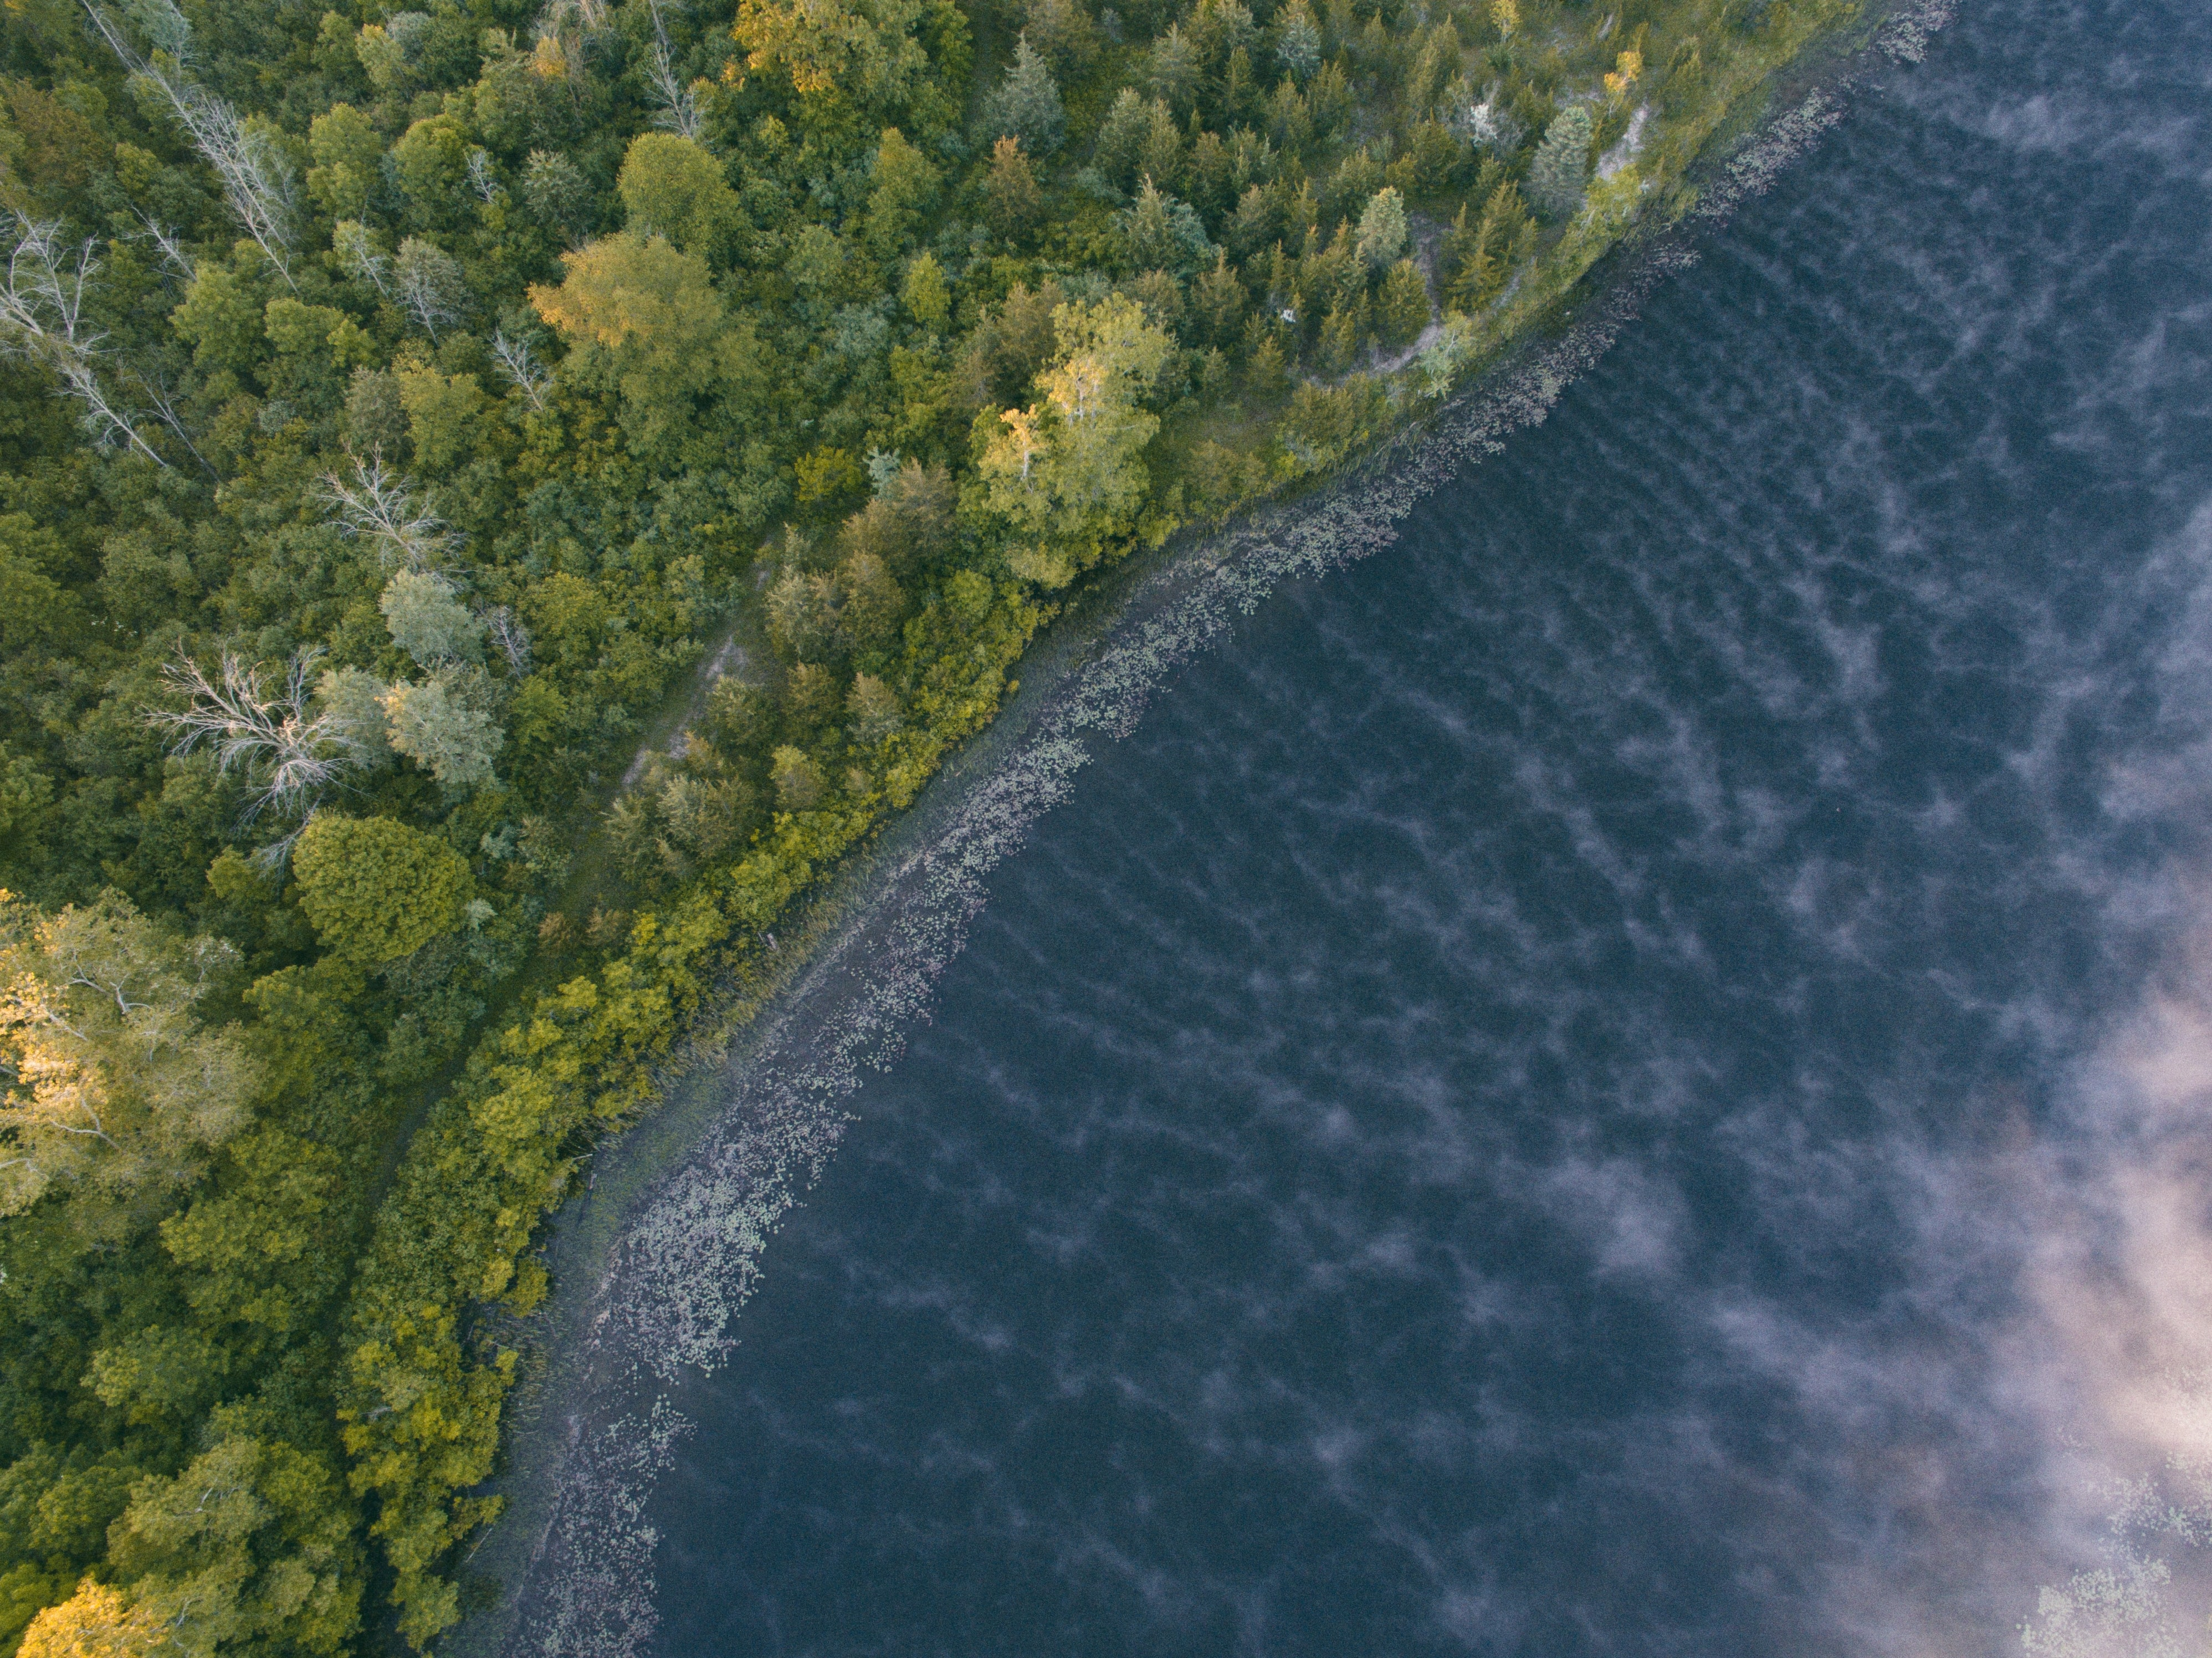 A drone view of the lake, shore, and forest in Flushing, Michigan, United States